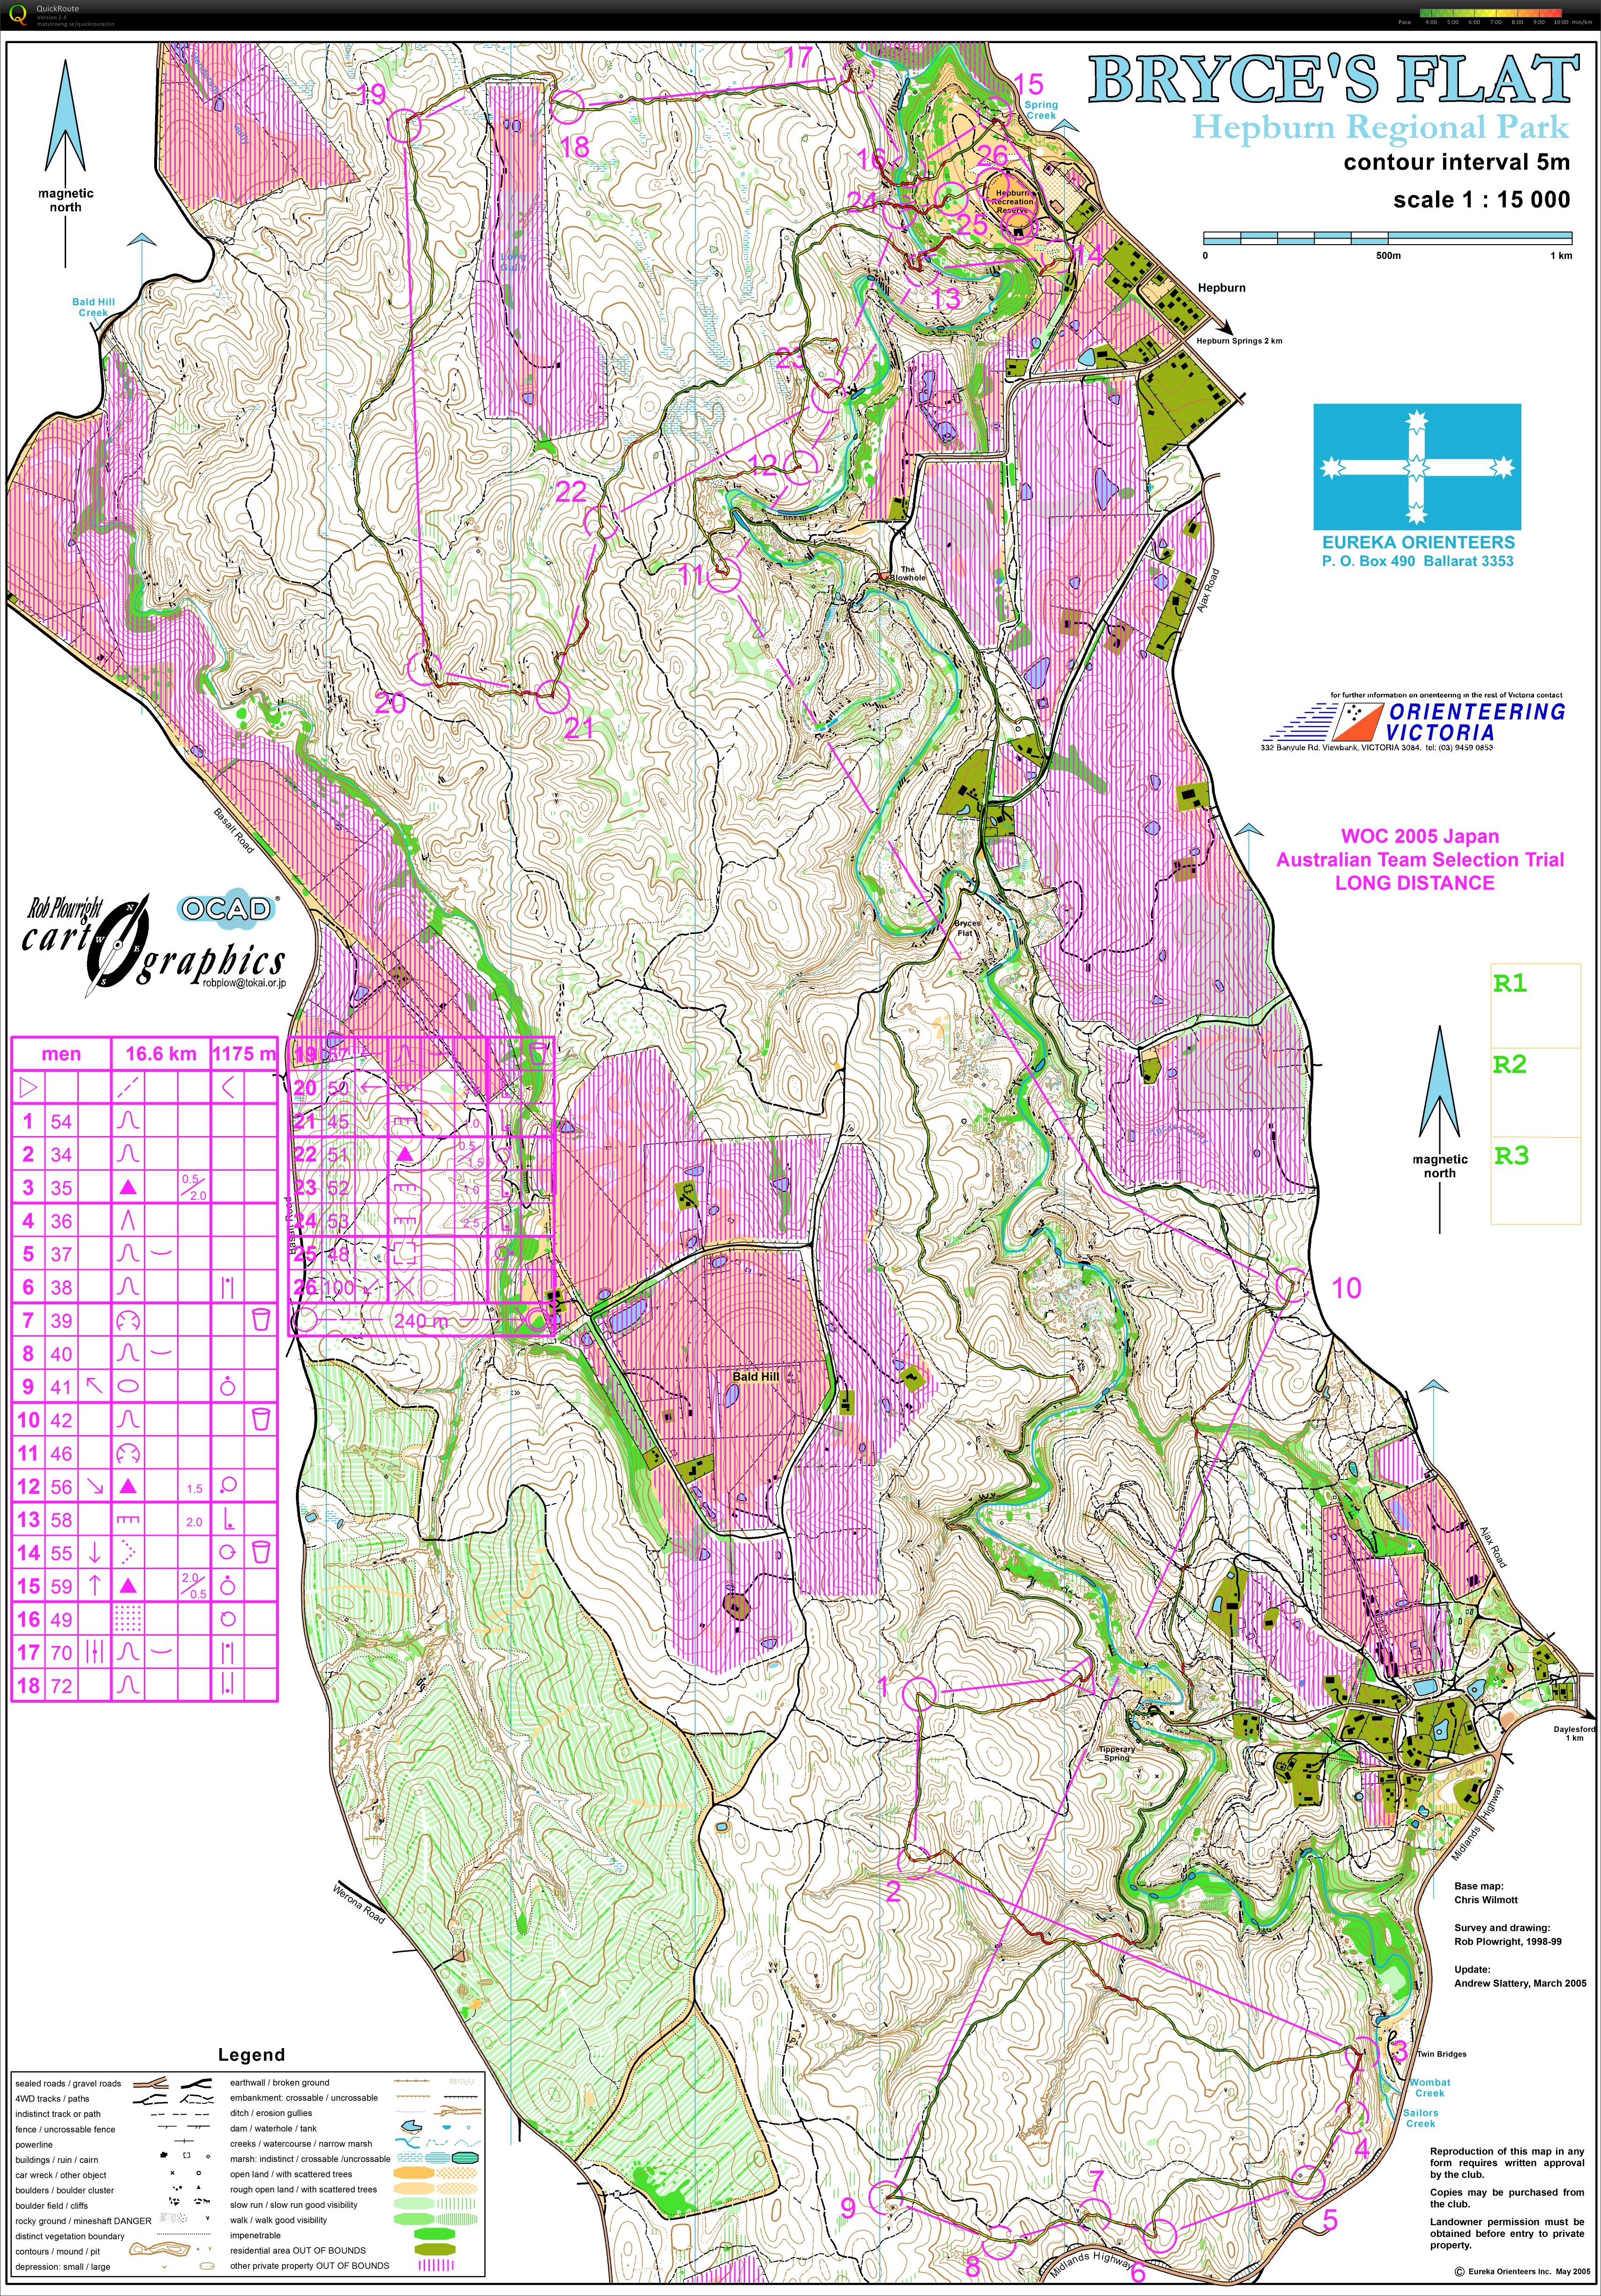 2005 WOC classic selection race  (25/01/2015)